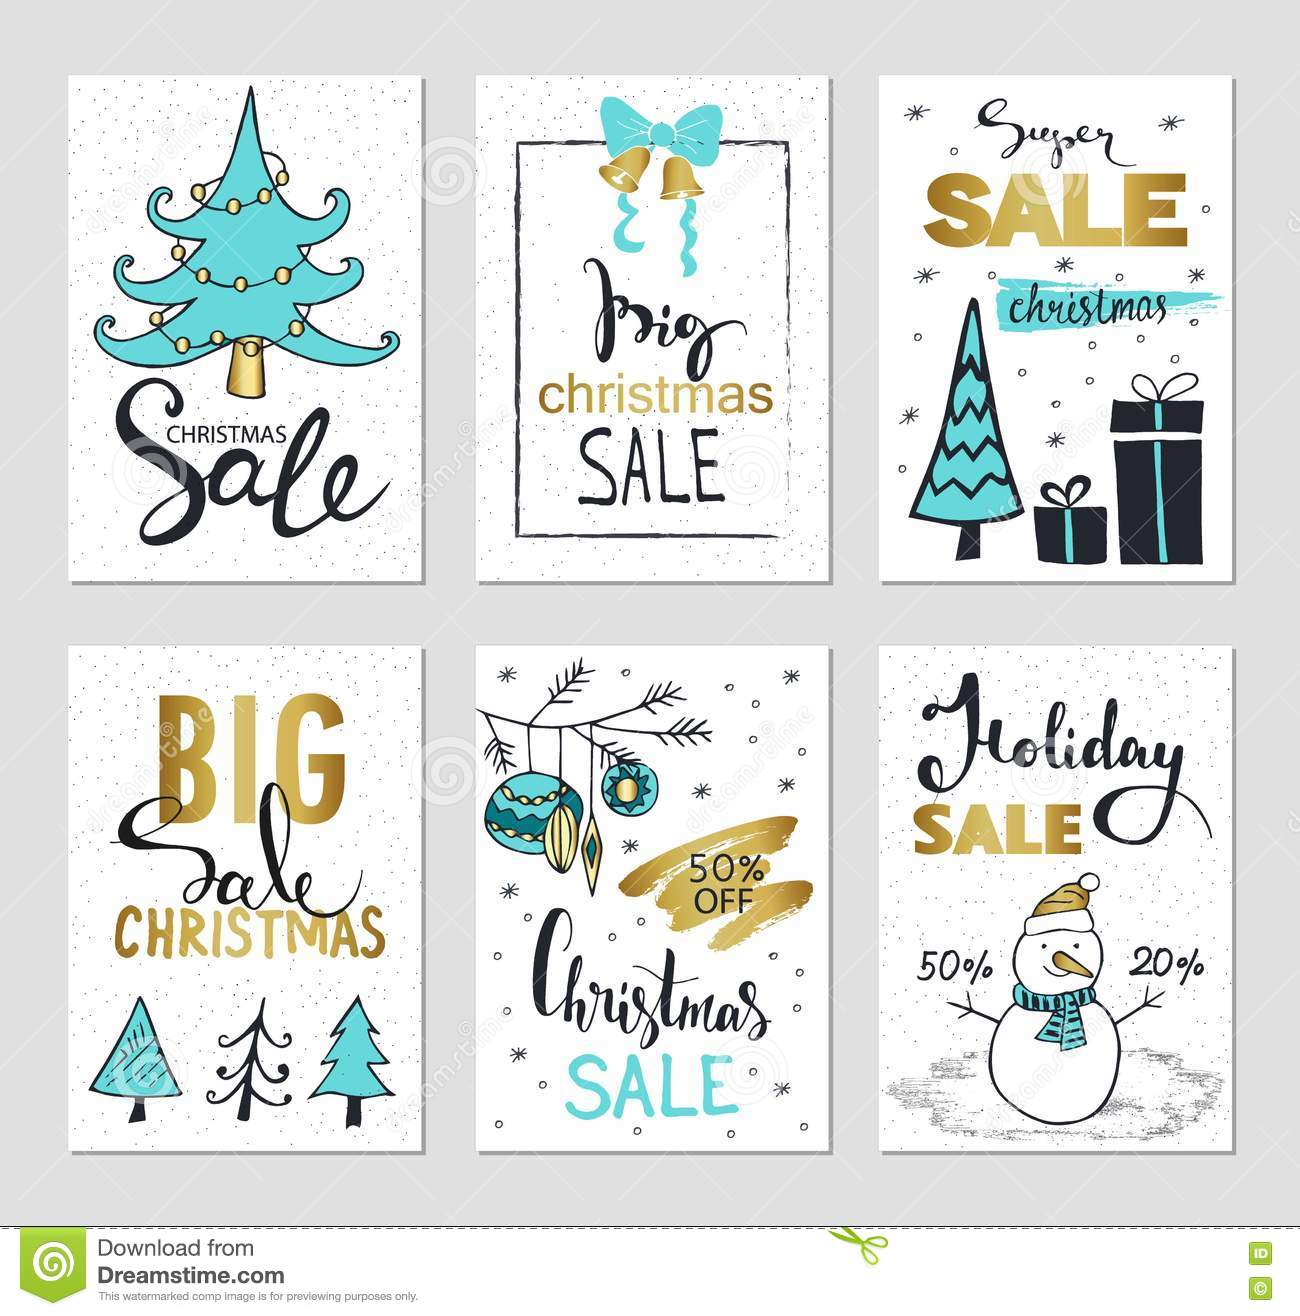 new year badge label promo banner template special offer set of creative holiday website banner templates christmas and new year illustrations for social